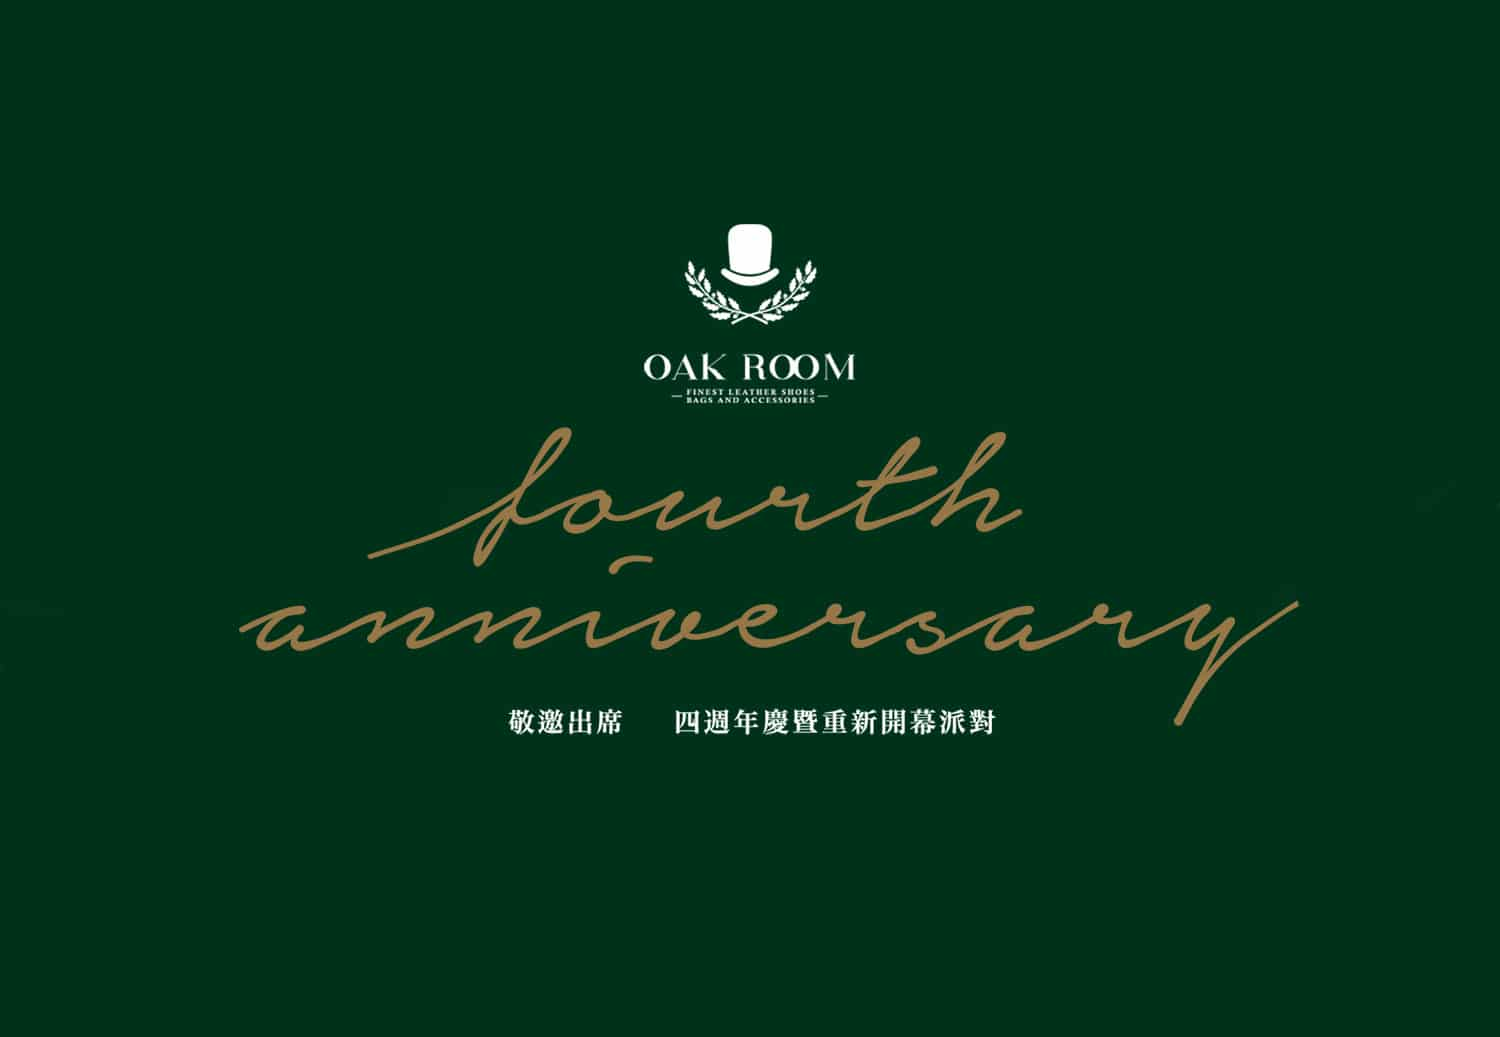 oak room fourth anniversary